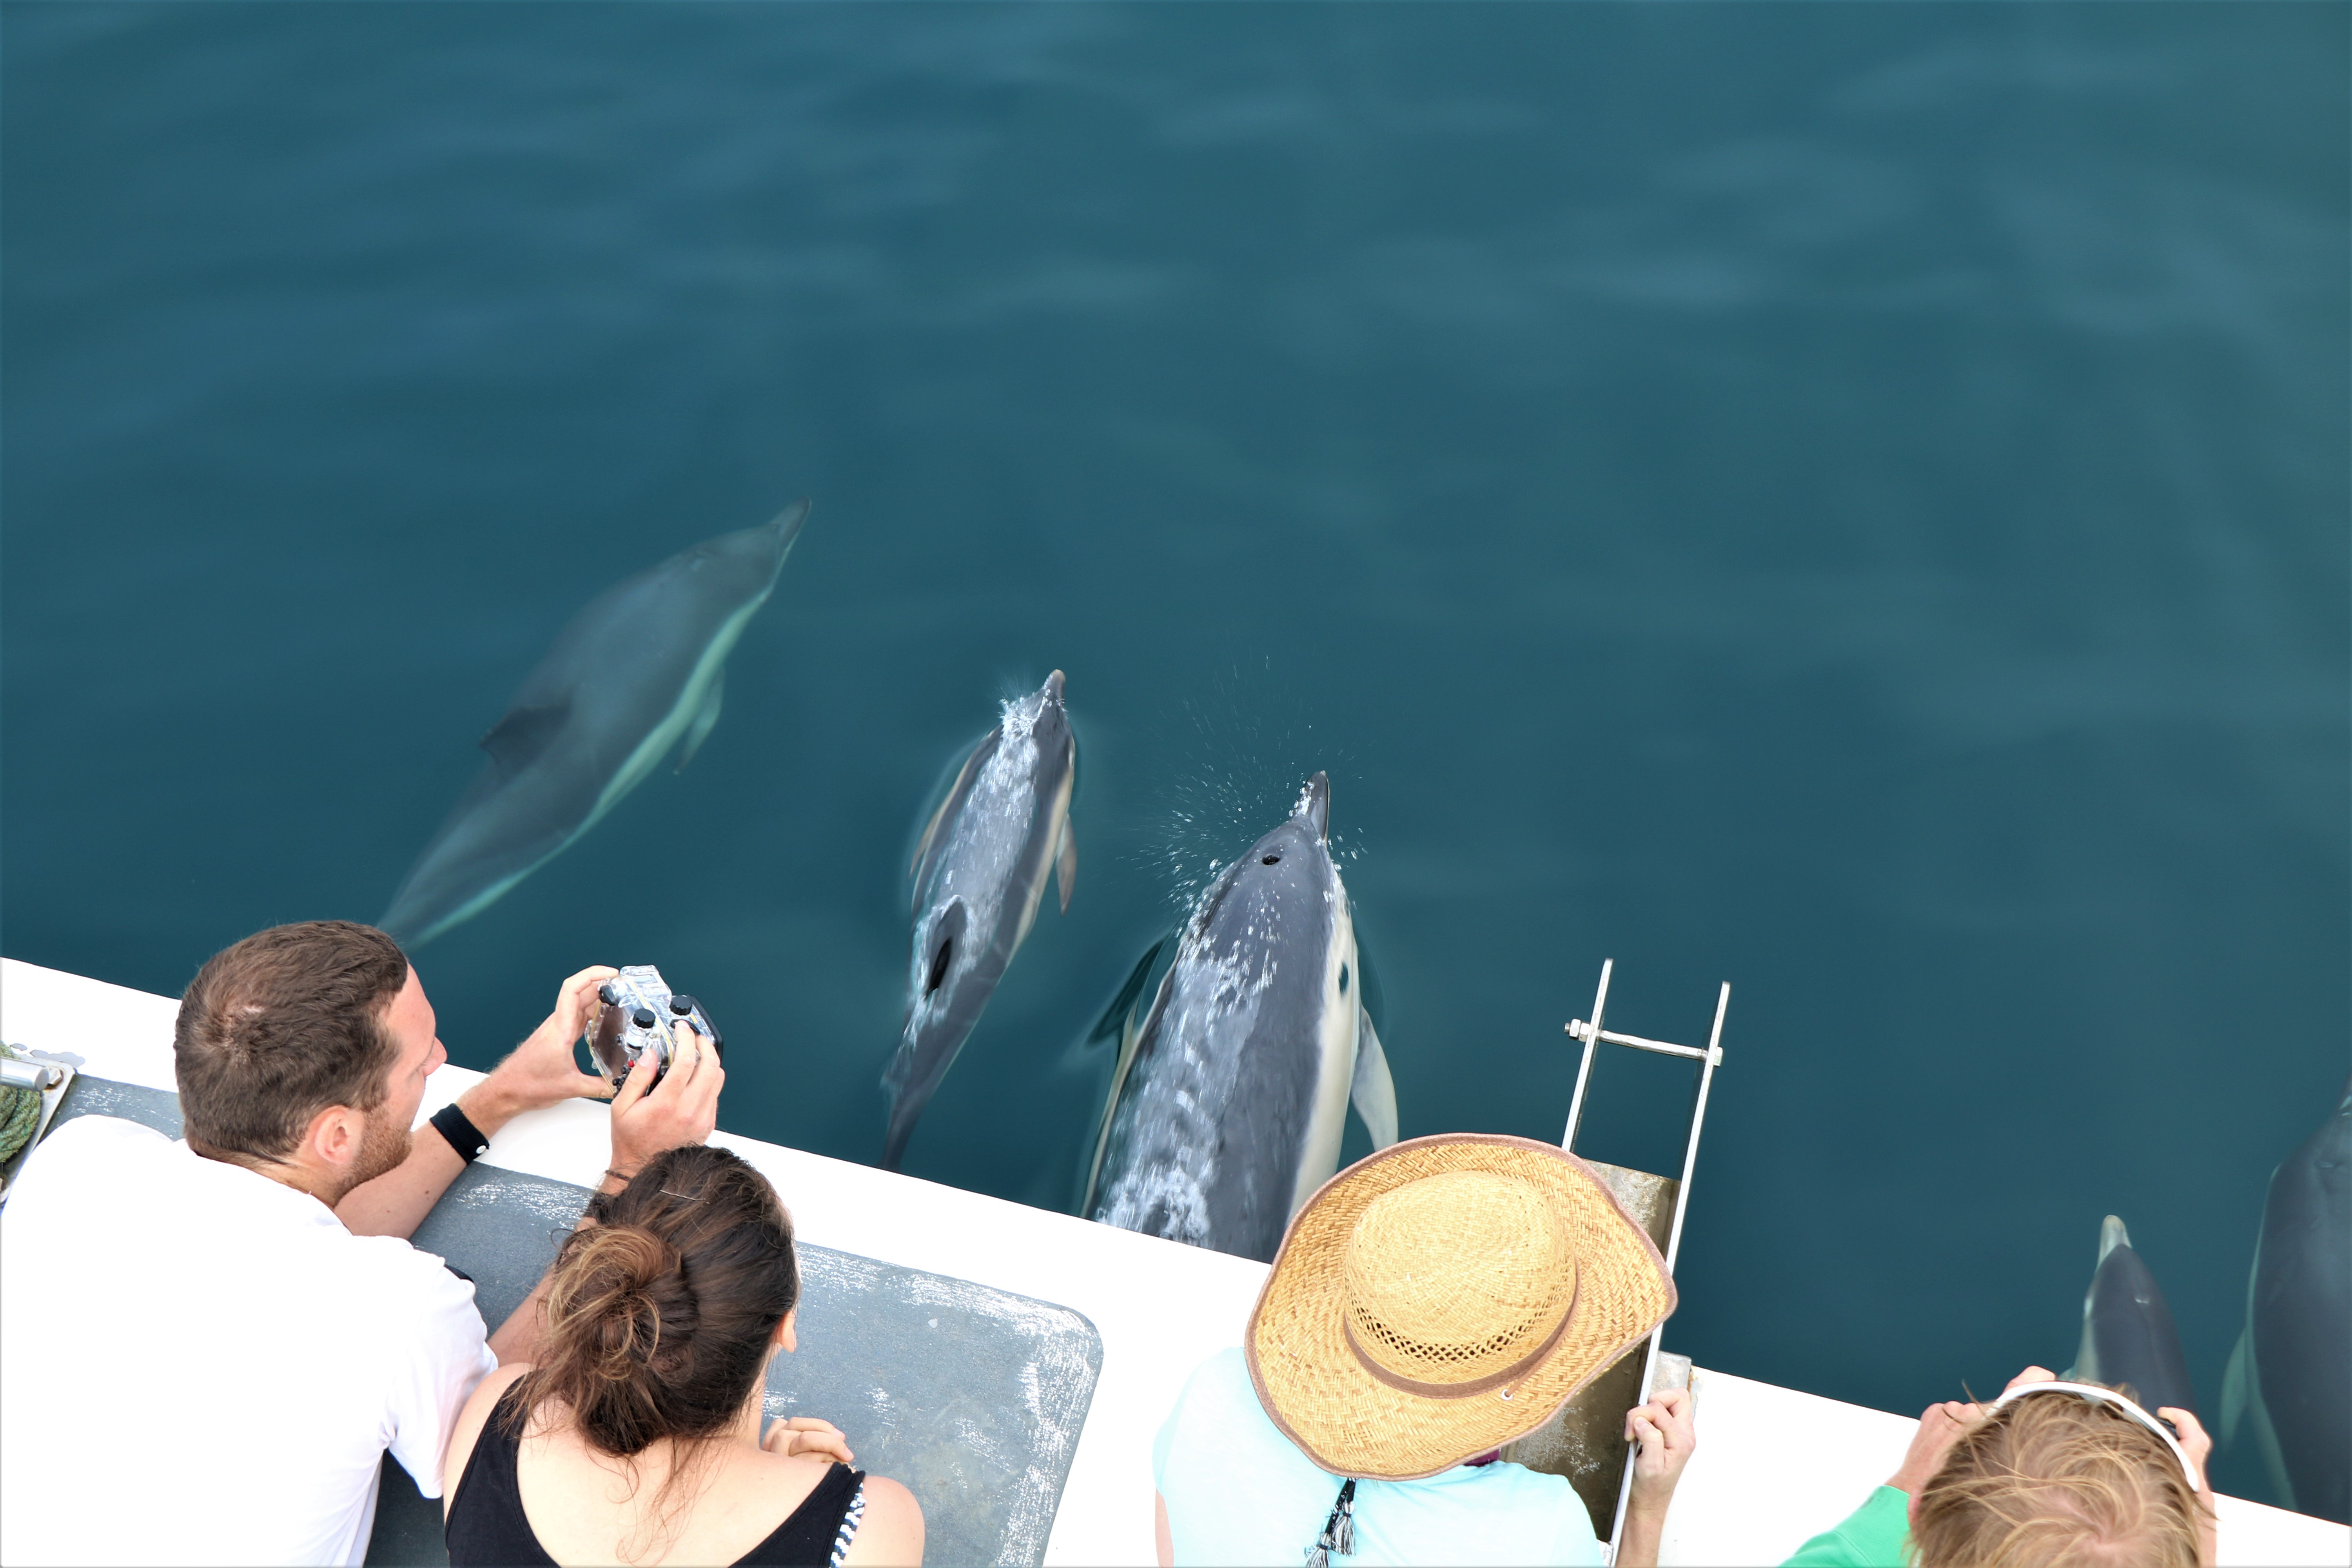 aaa5e10b9477 A pod of short-beaked common dolphins sighted on August 3rd in Newquay